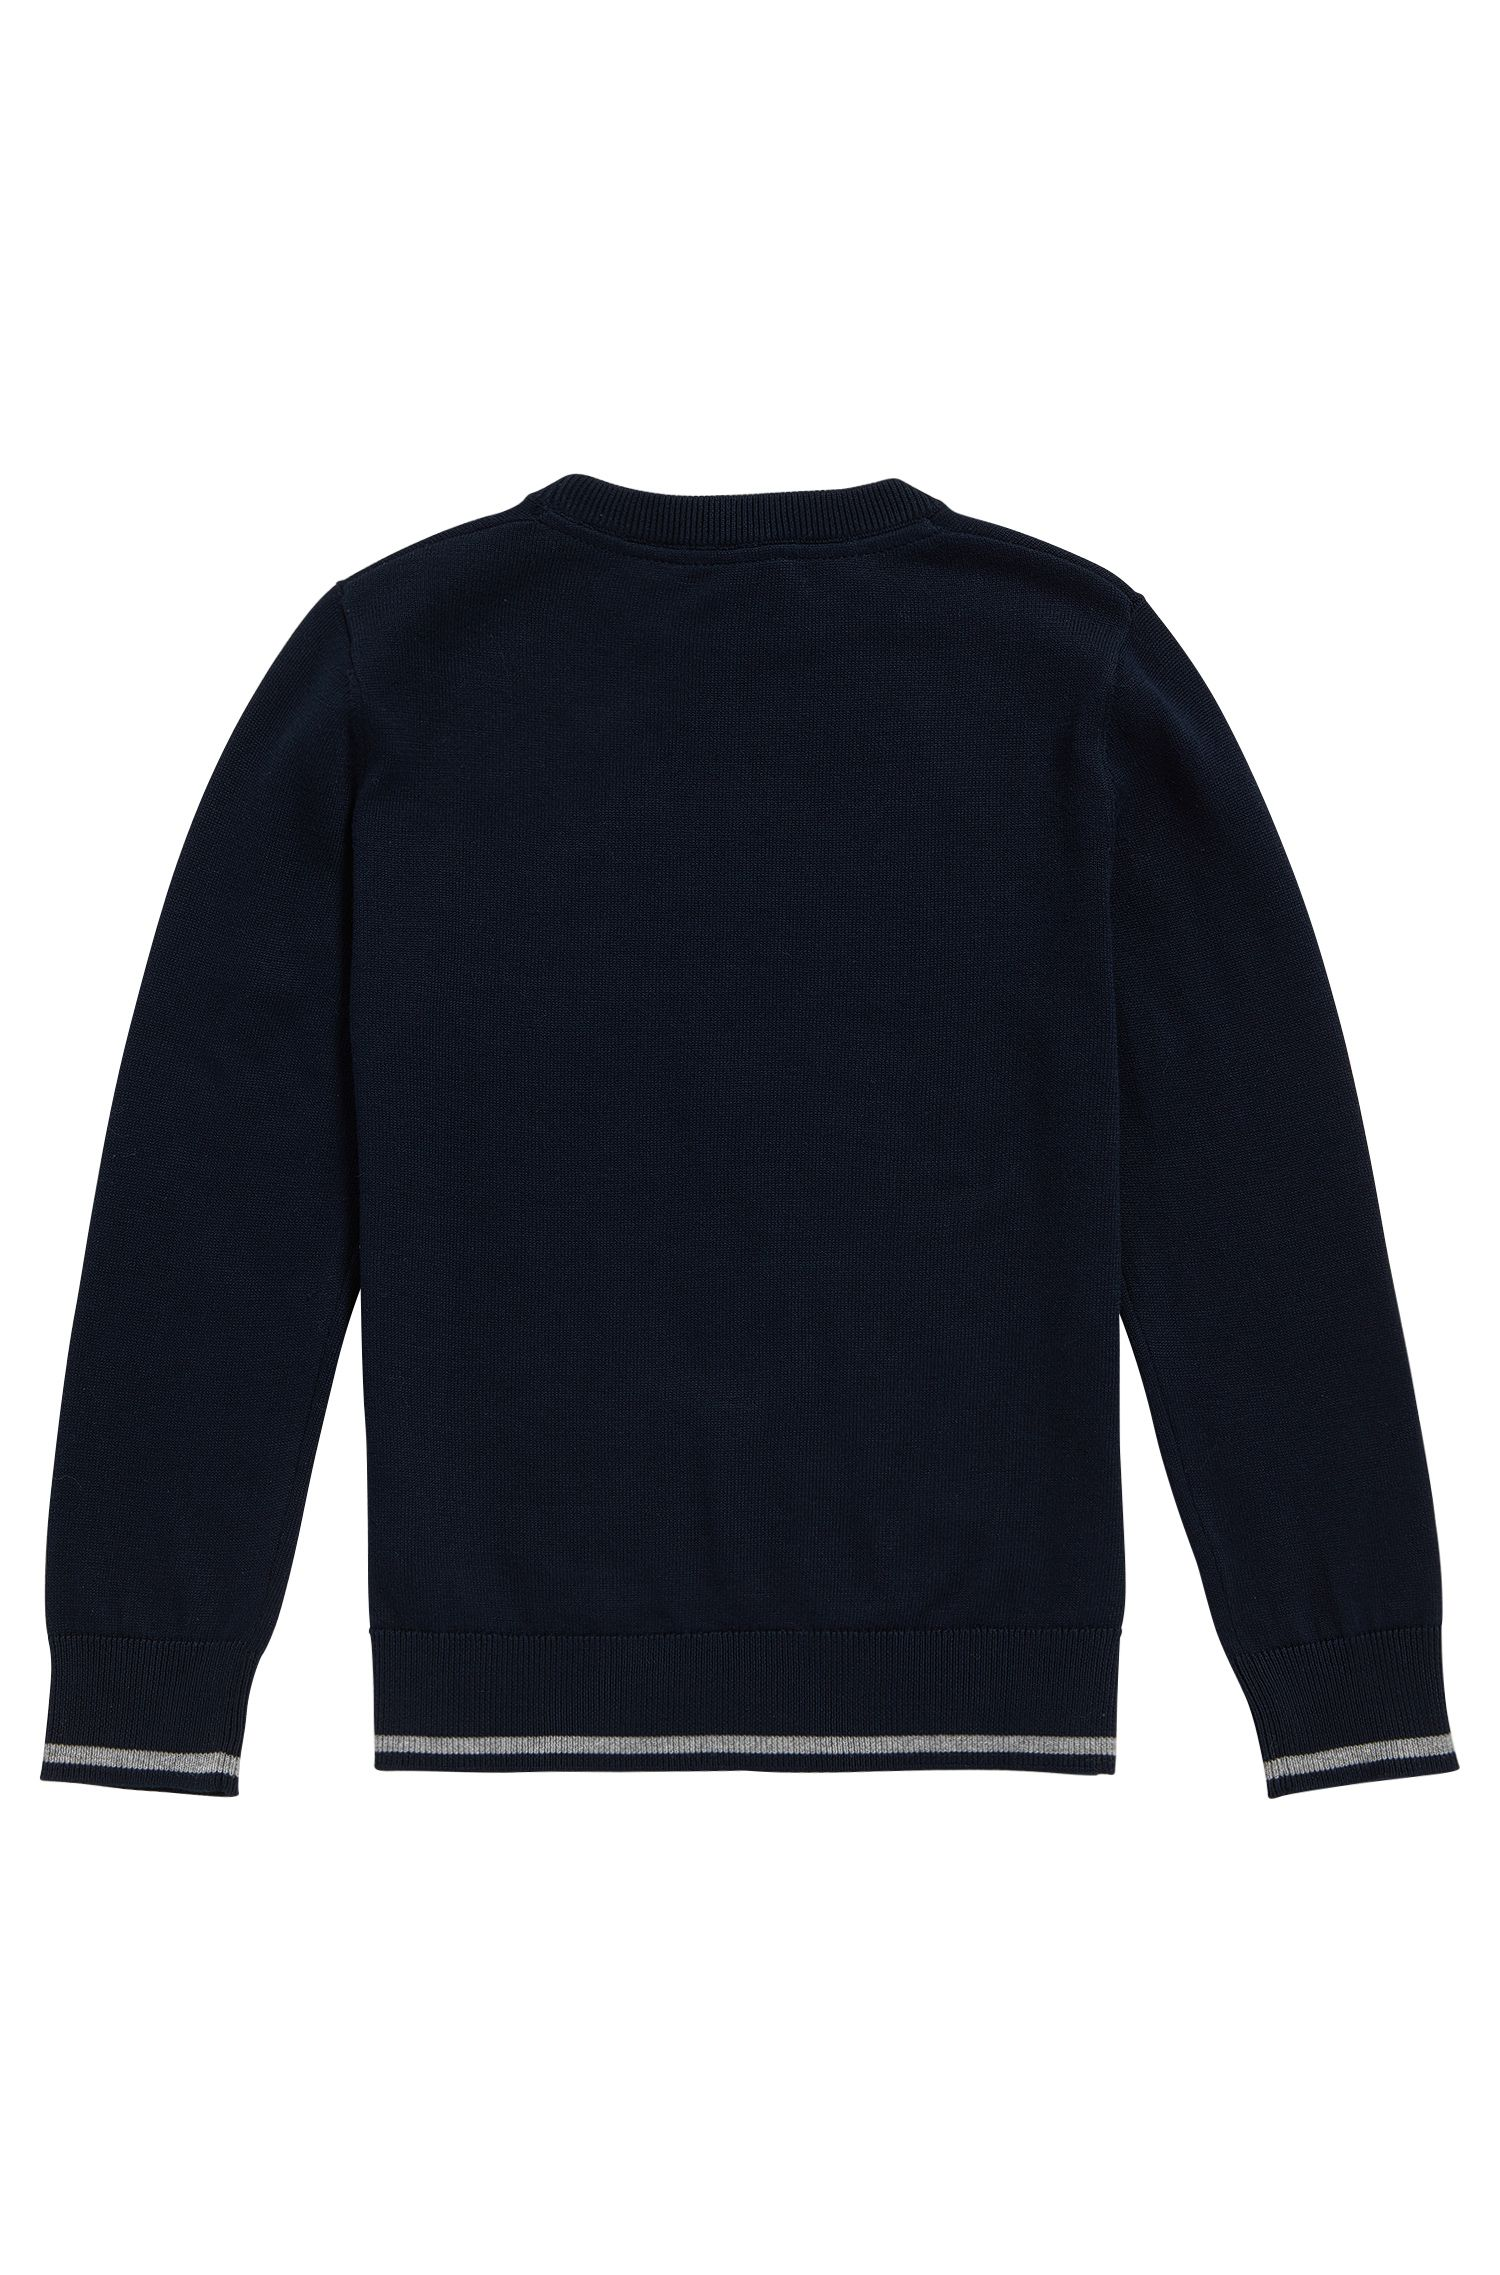 Kids' regular-fit sweater in combed cotton